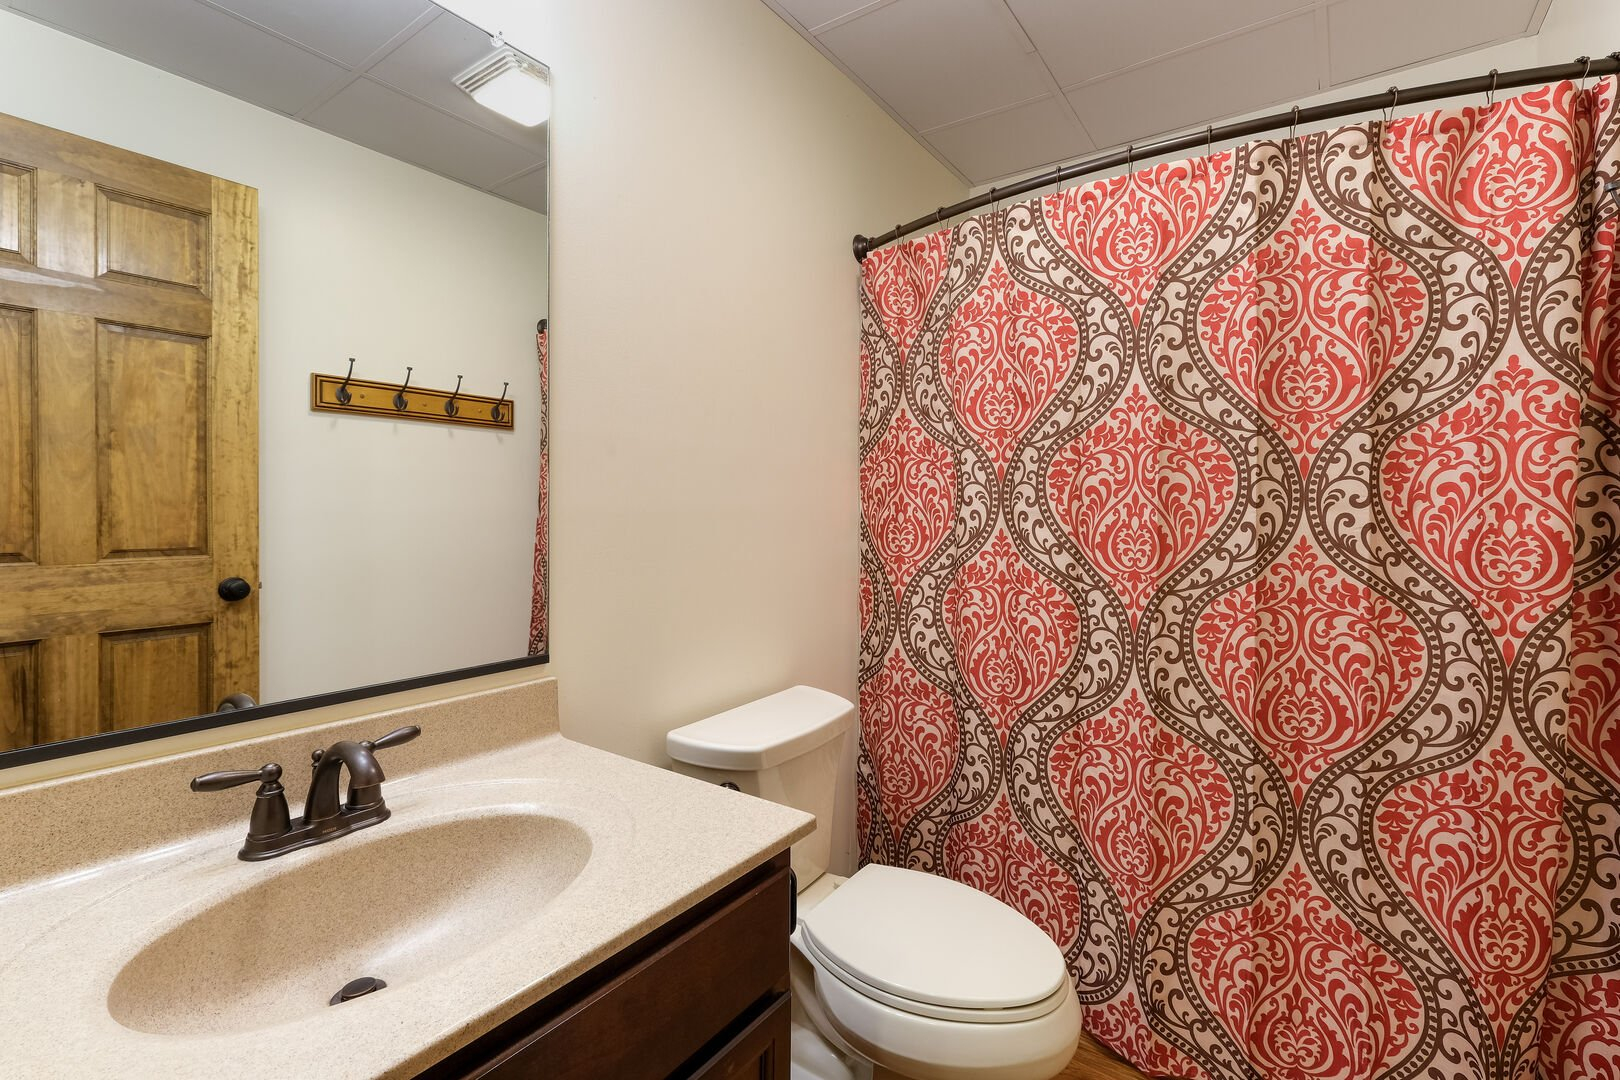 Toilet, sink and mirror, and shower (with curtain closed) of one of this rentals bathroom.